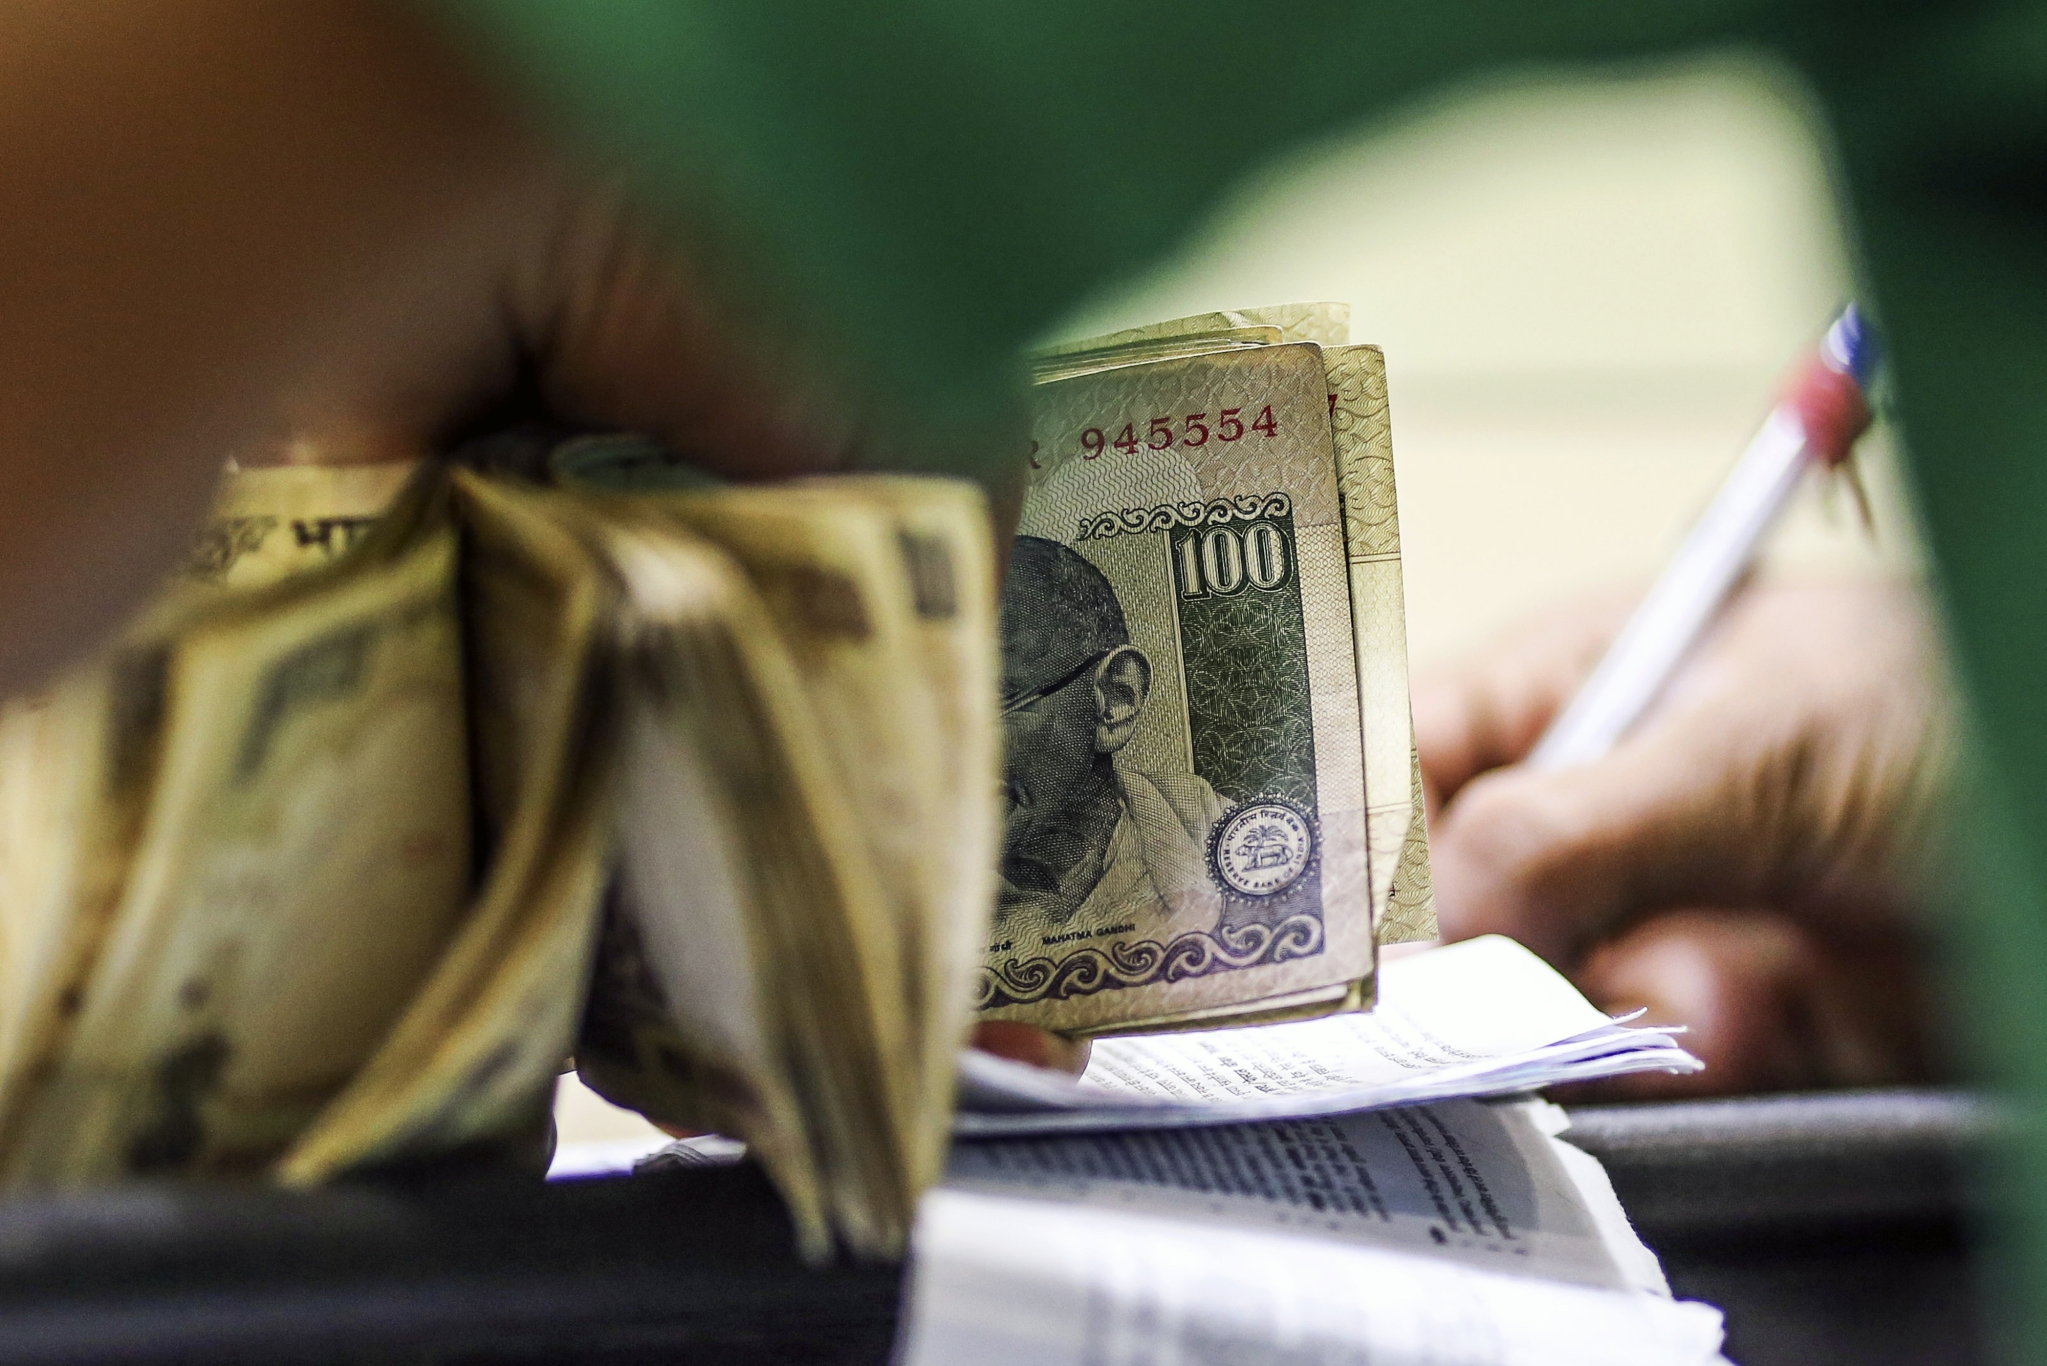 India starts to develop yield curve as trading shifts from 10